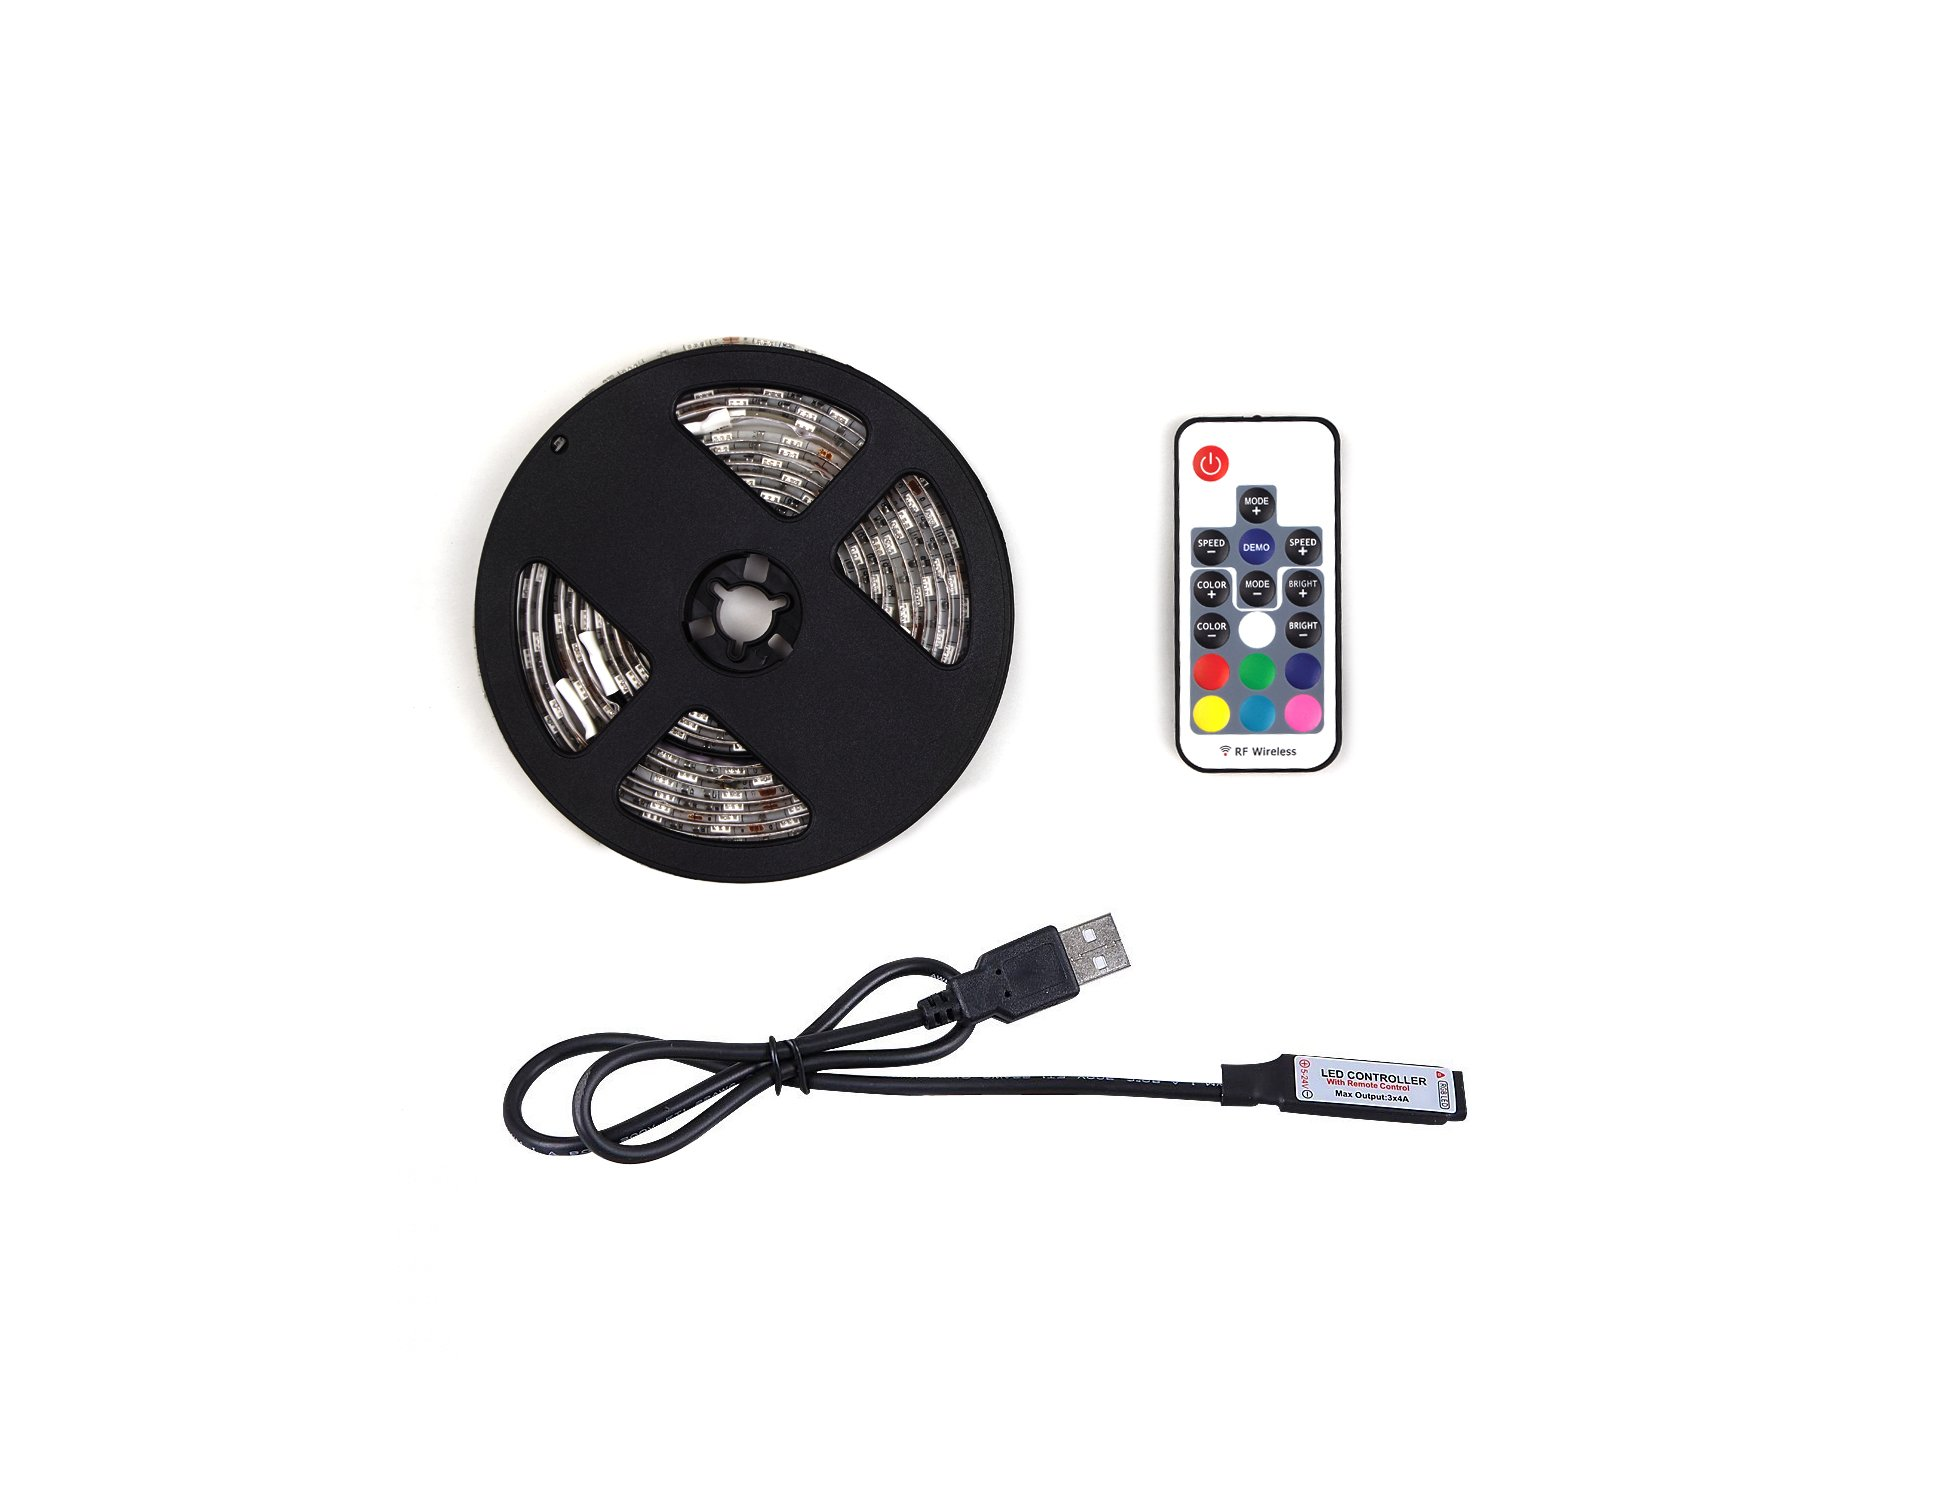 WYNK LED Strip Lights with Remote USB Back Light Fixture DIY 5050RGB Flexible 3.4M 104LED Color Changing Full Kit + 4 Connector + Remote Controller for Computer/TV/Home/Kitchen/Christmas Decorative by WYNK (Image #6)